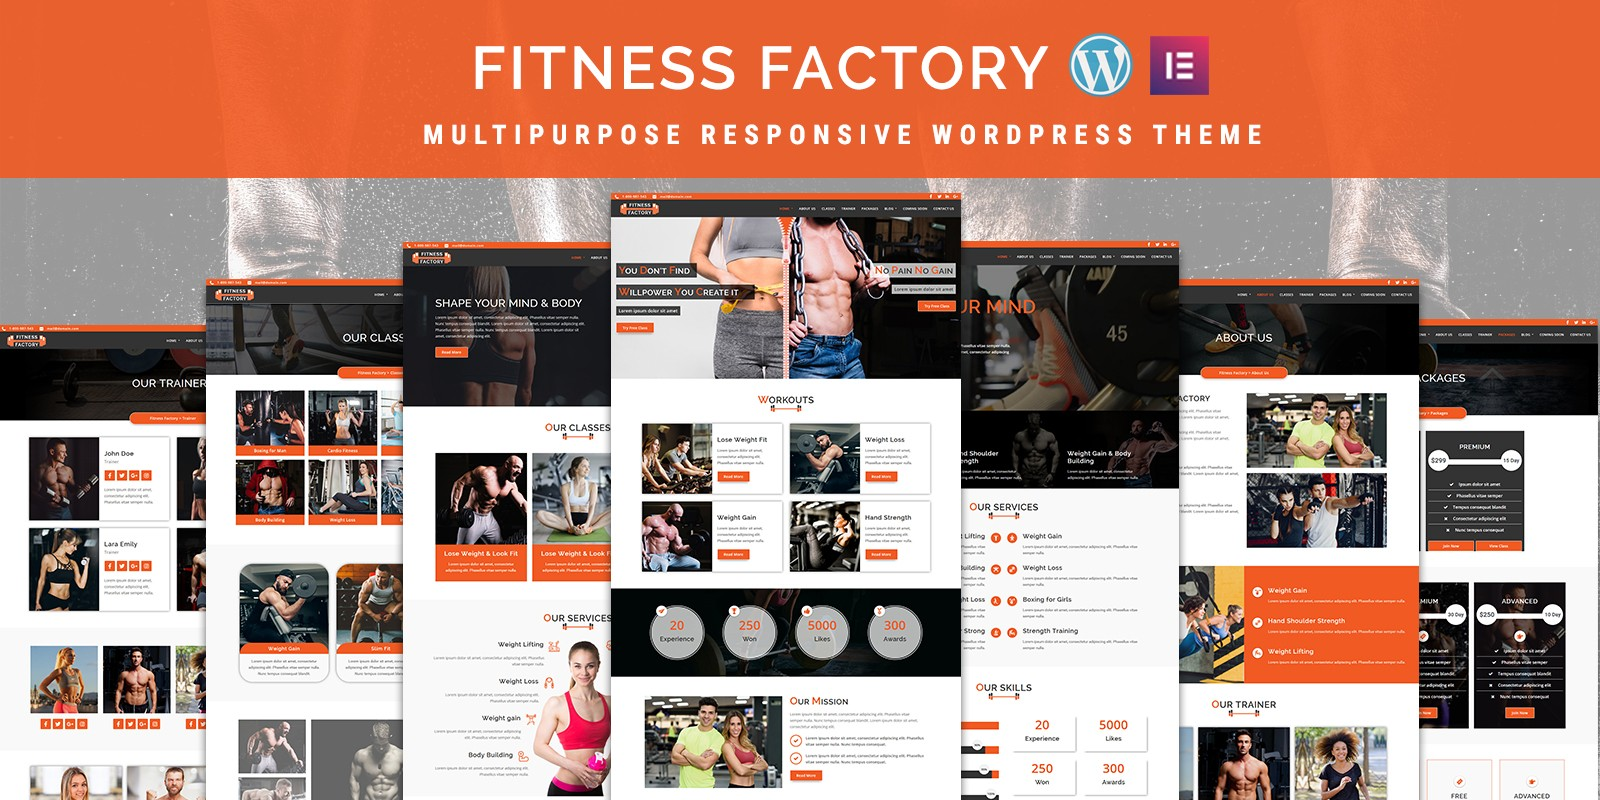 FitnessFactory - WordPress Theme